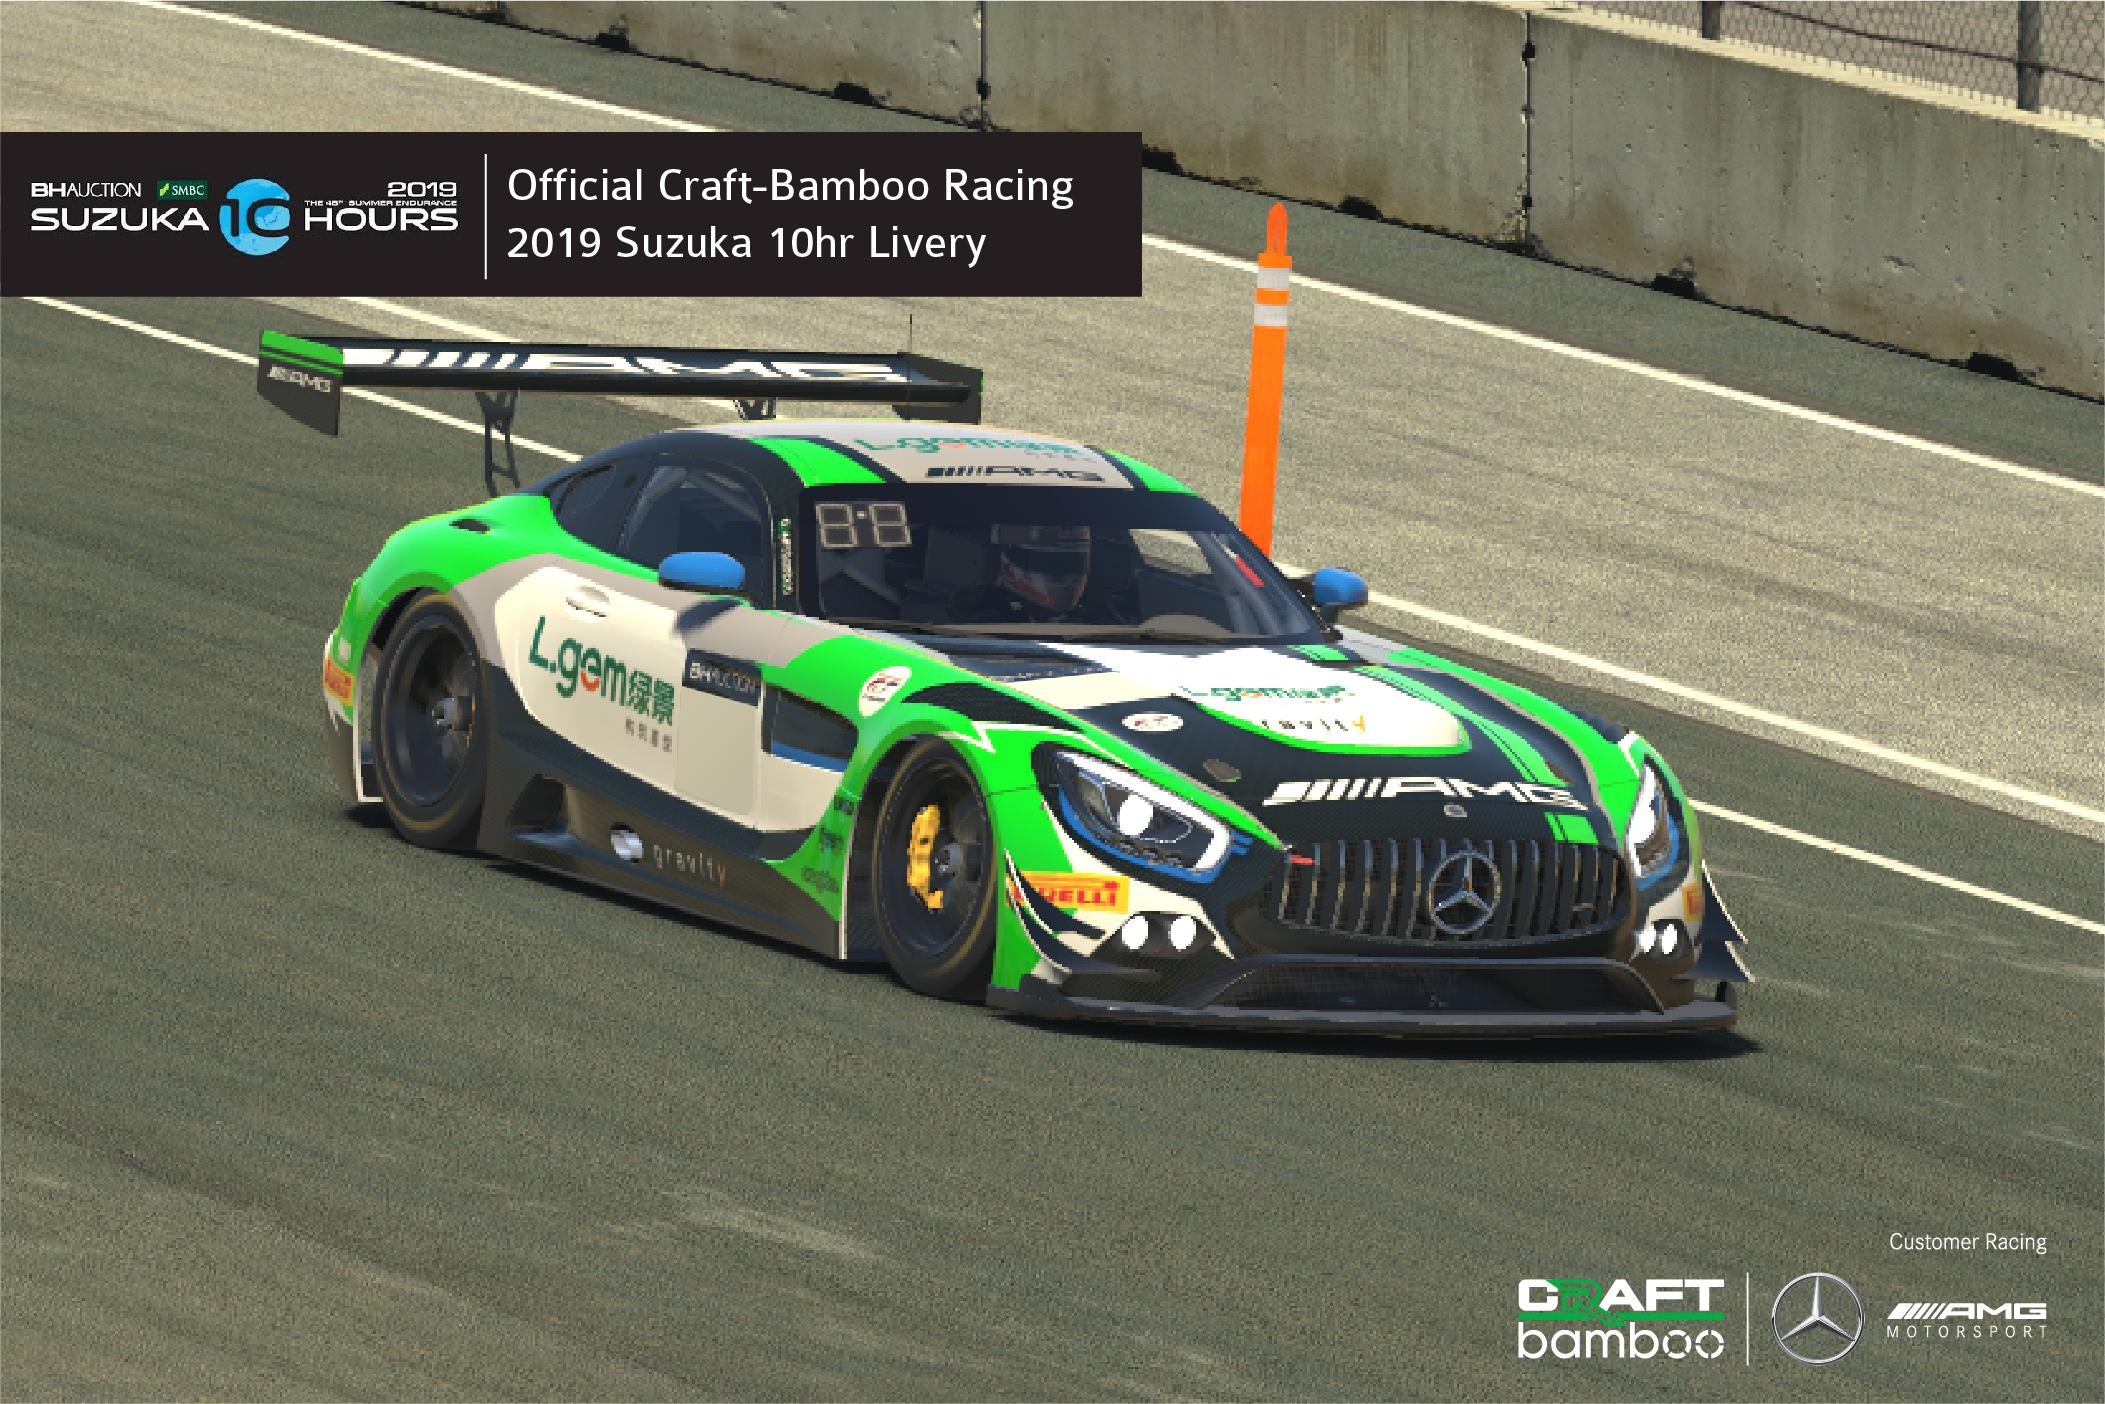 Preview of 2019 Suzuka 10 Hours Mercedes-AMG Team Craft-Bamboo Racing by Arthur T.